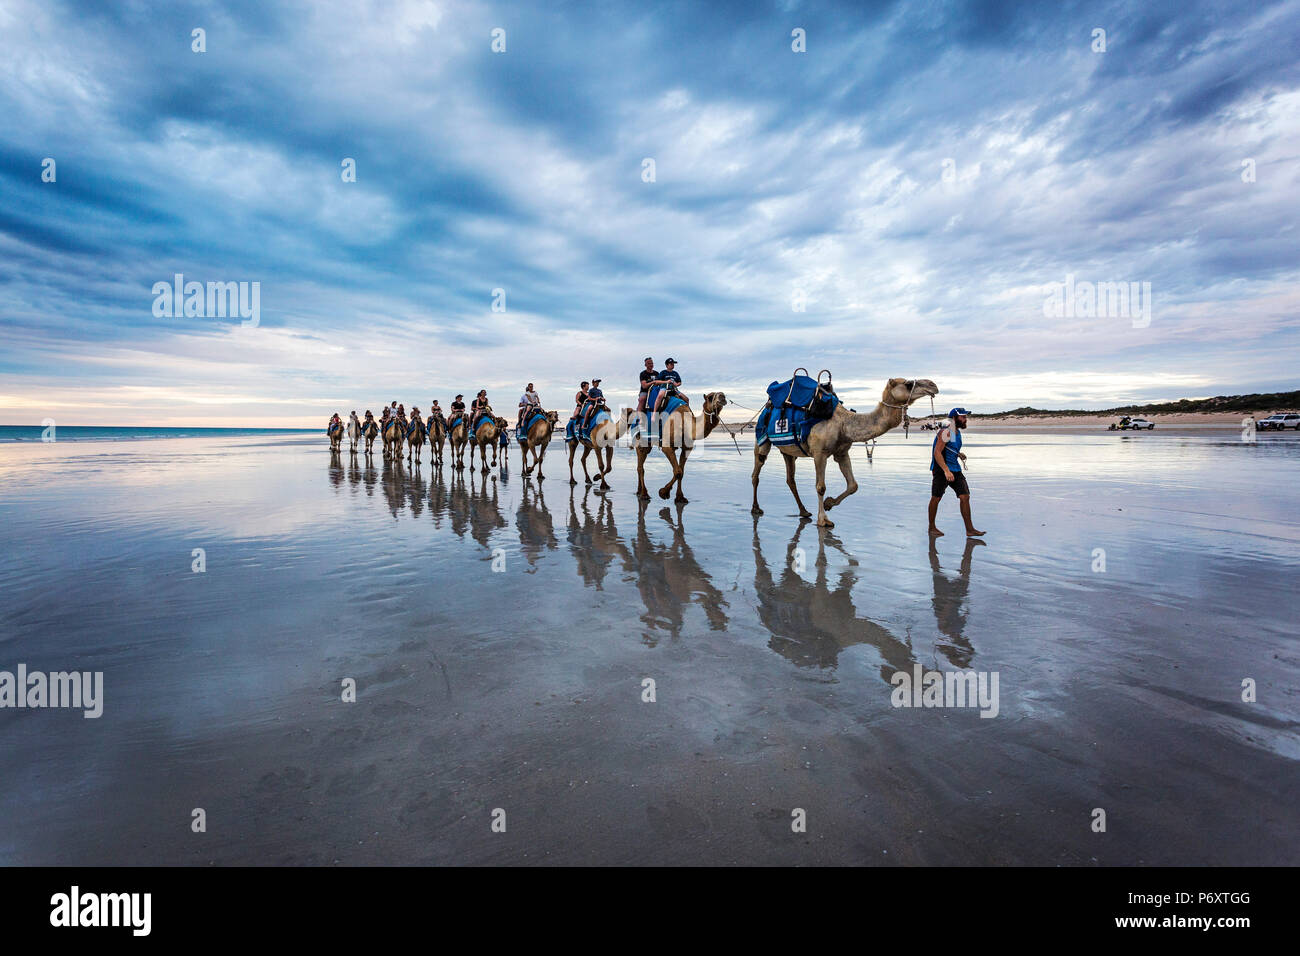 Cable Beach, West-Australien. Kamele am Strand bei Sonnenuntergang Stockbild